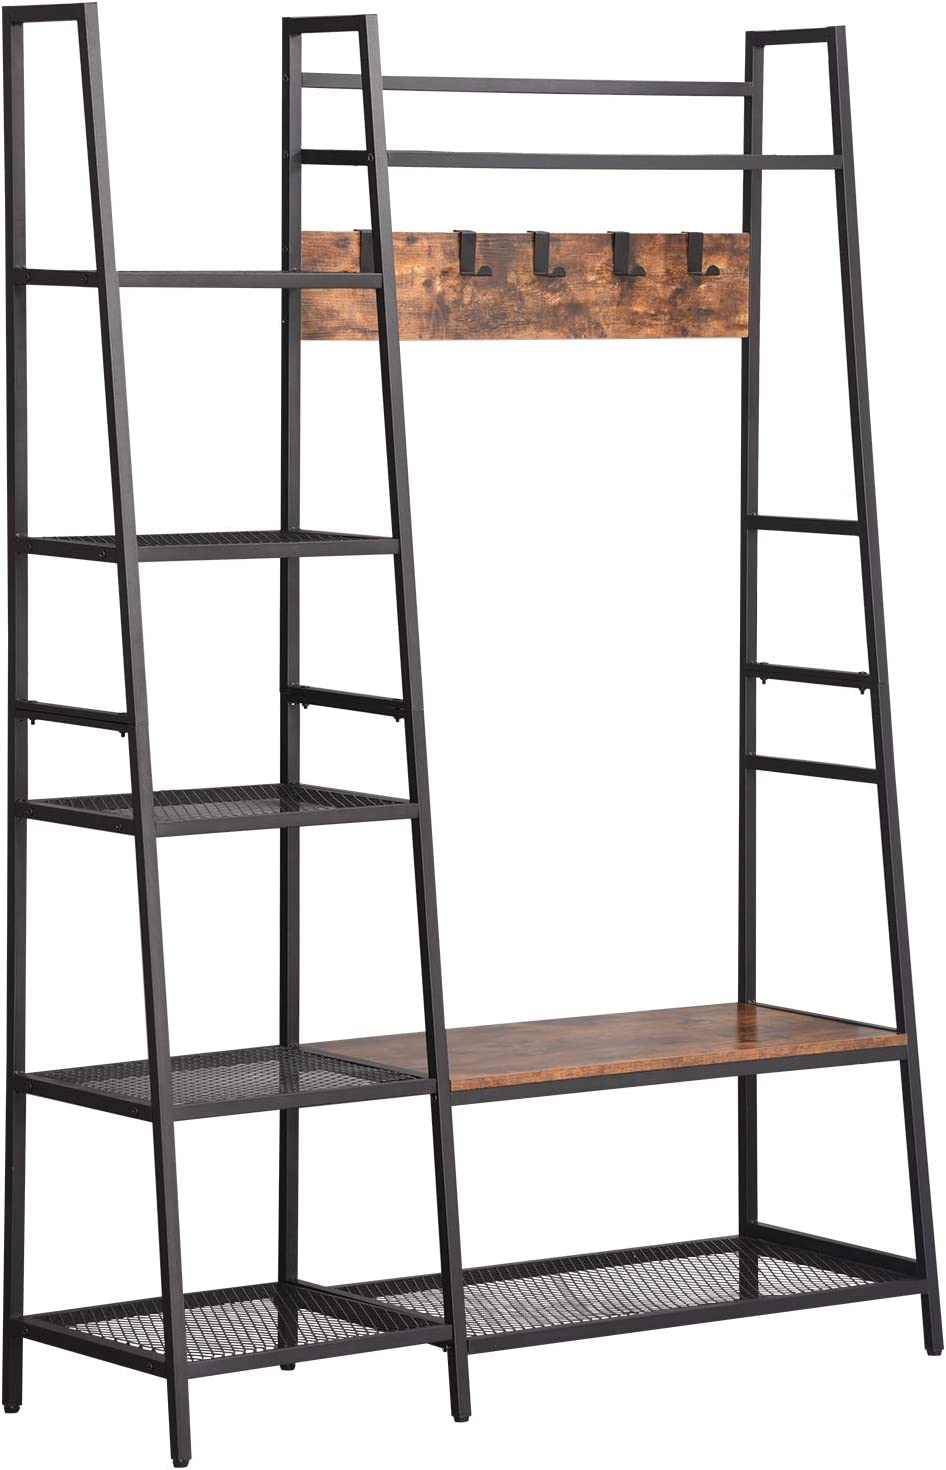 XPELKYS 3-in-1 Entrance Hall Tree with 5 Removable Coat Hangers and Storage Racks, Industrial Coat Rack for Benches, Entrance Shoe Rack with Metal Frame, Easy to Assemble, Rustic Brown